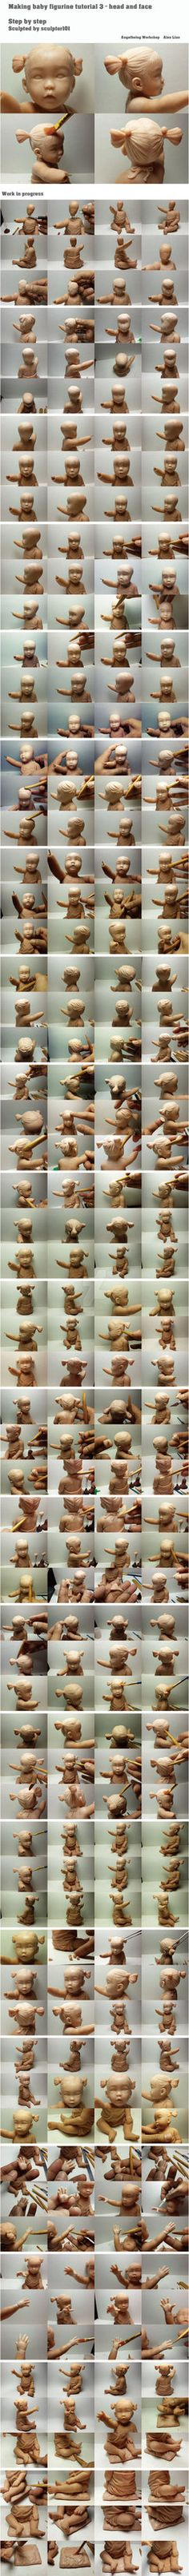 Making baby figurine tutorial 3 - the head, face, hand and cushion base   The attached pictures are the rest of process of baby figurine. I know there are a whole lots of pictures. It may take...